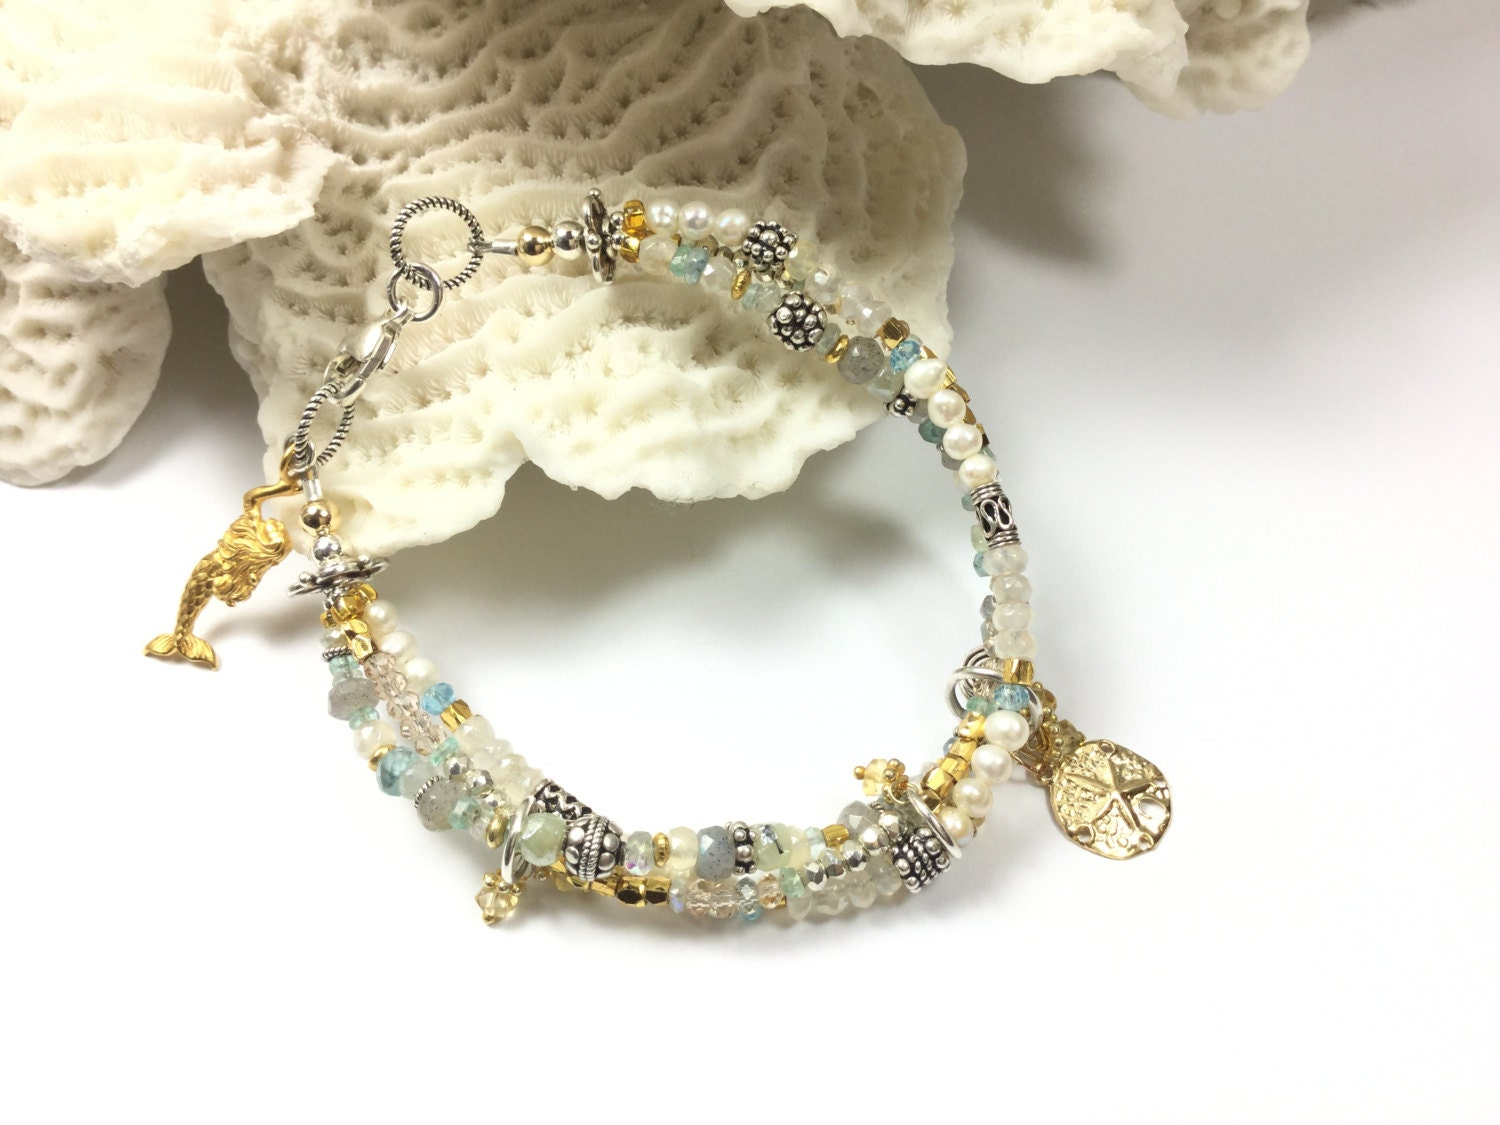 Mermaid Charm Bracelet, Mermaid Bracelet, Gemstone Bracelet, Beach Bracelet, Beach Jewelry, Beach Wedding Bracelet, Sundance Style Jewelry